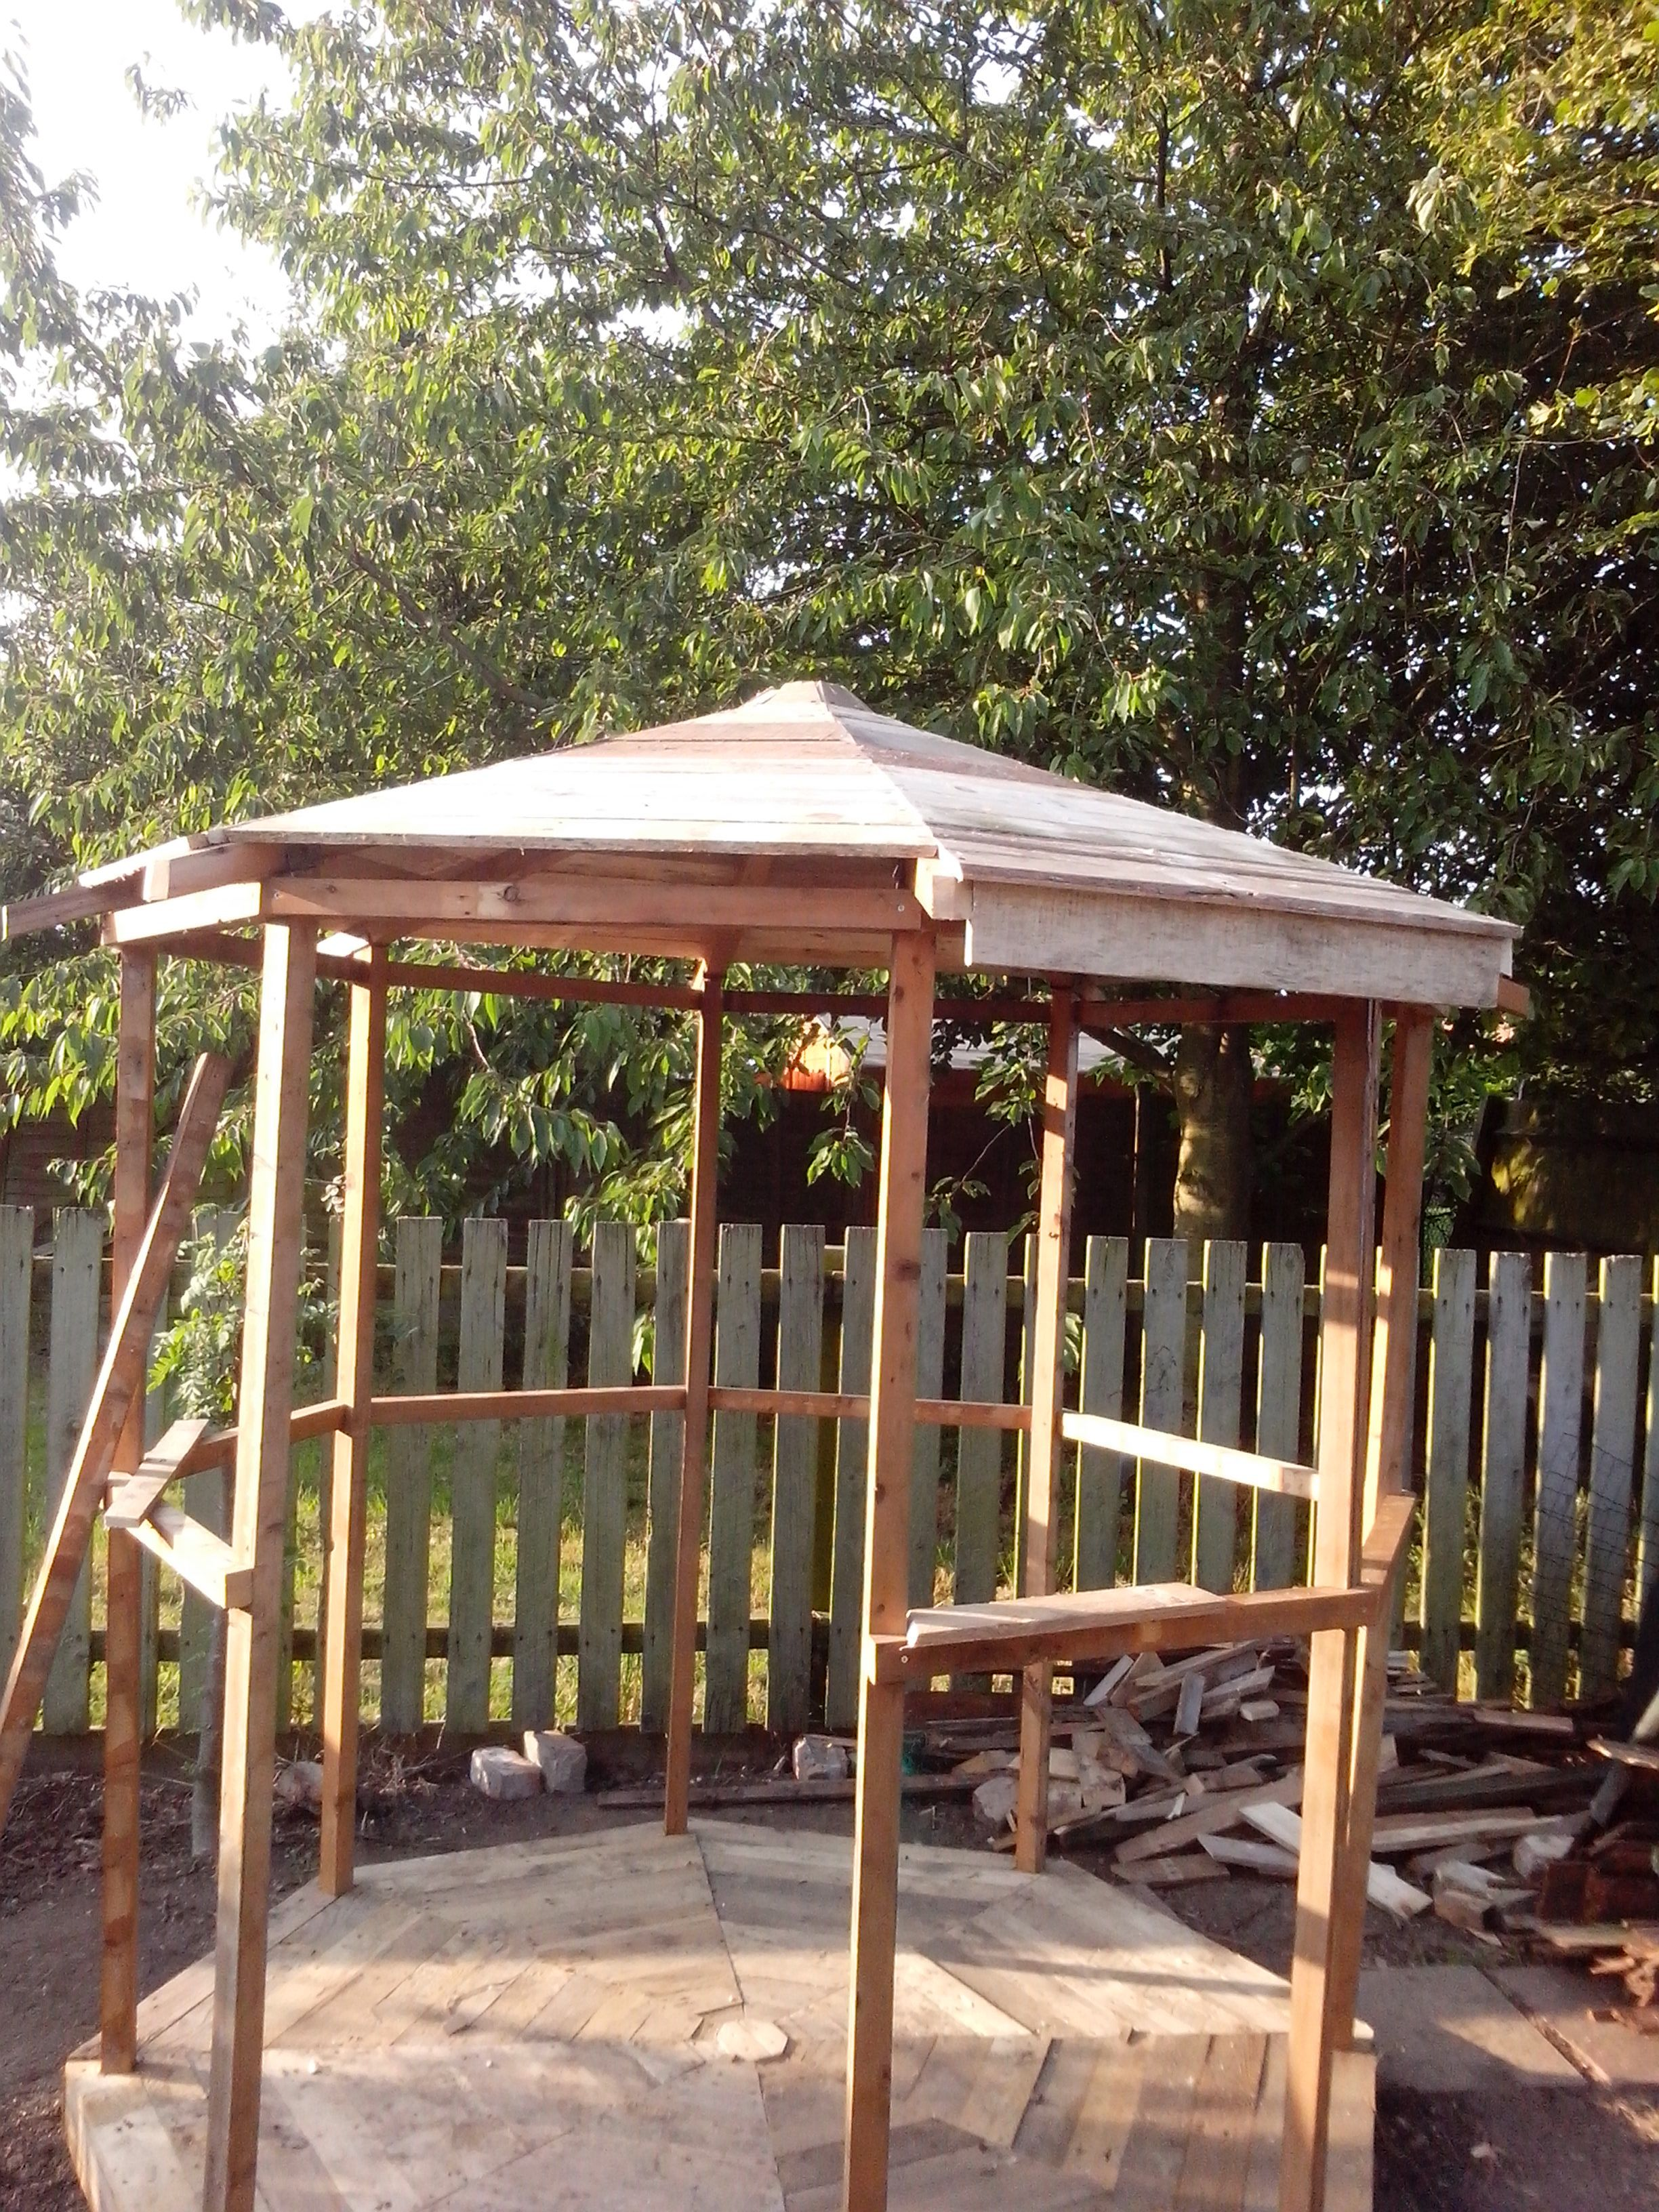 Building Gazebo Using Scrap Wood And Pallets